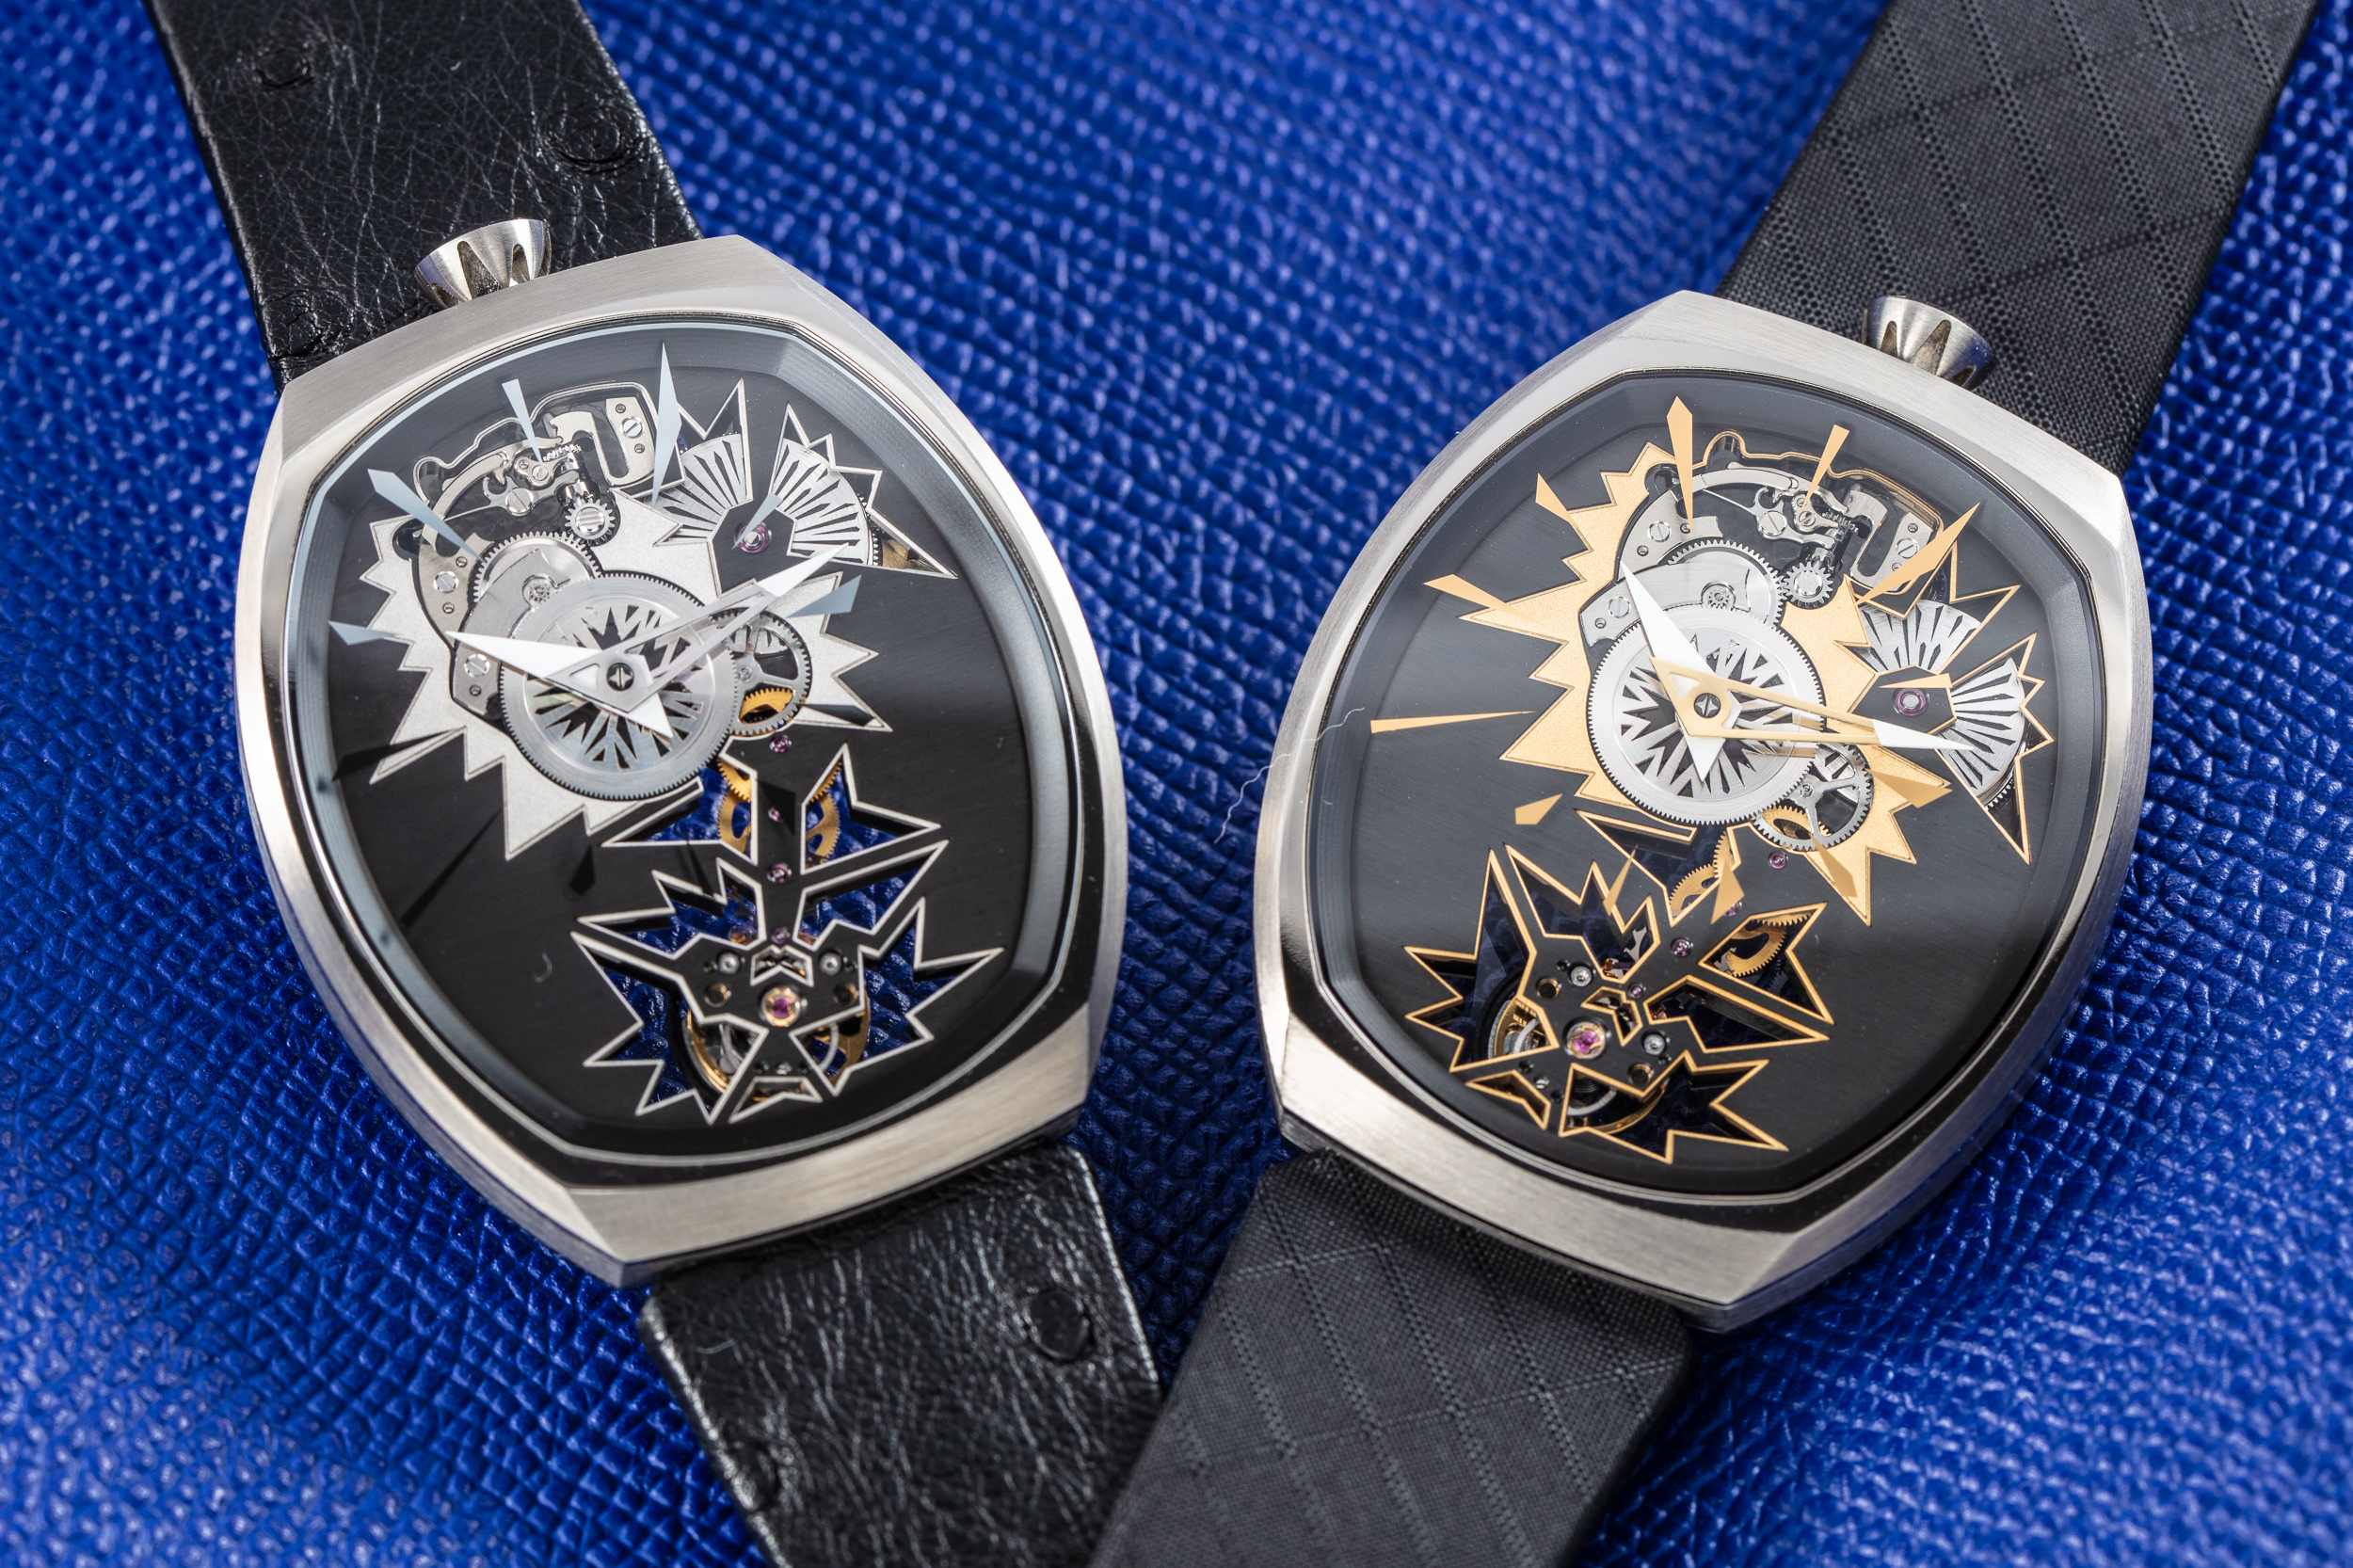 Two versions of the Entropy watch from Fiona Krüger's Chaos Collections